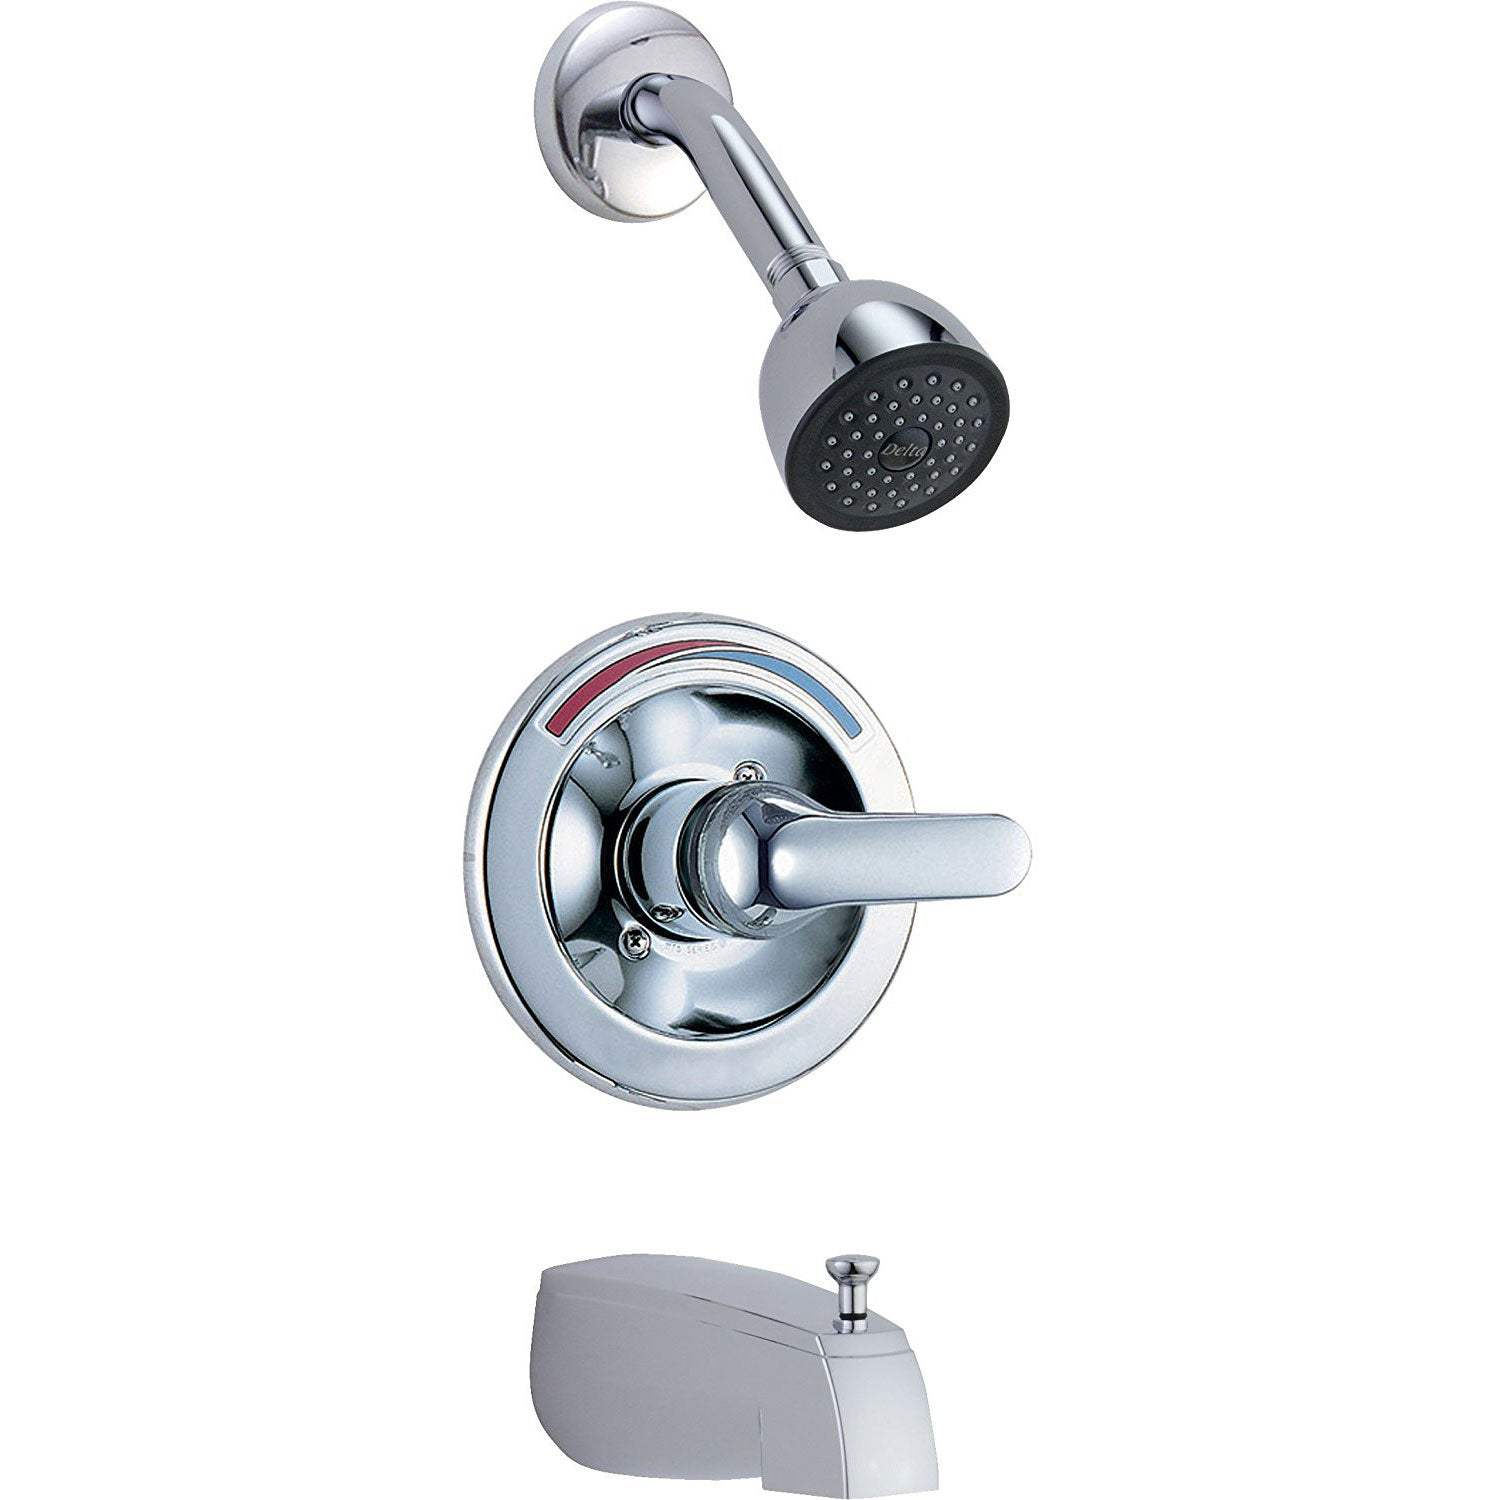 Delta Chrome Finish Monitor 13 Series Classic Style Tub and Shower Faucet Combination Includes Rough-in Valve with Stops D2516V